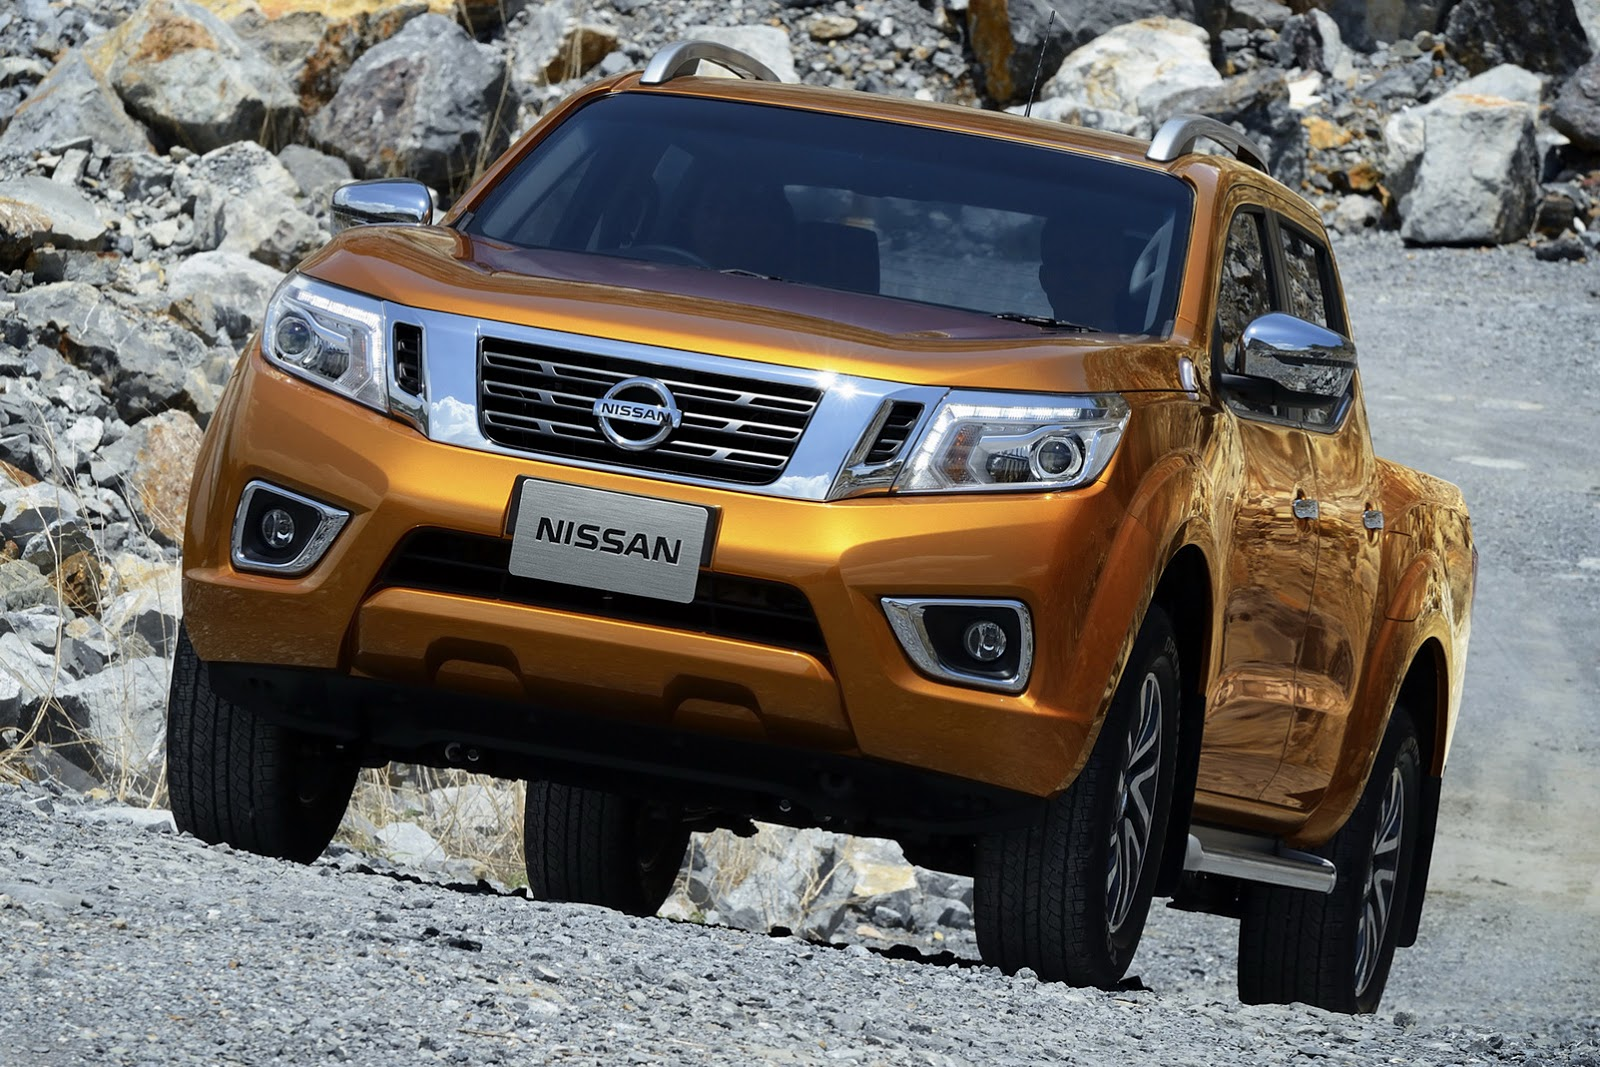 Renault Pickup Truck Confirmed for 2016, Will Be Based on Nissan Navara - autoevolution